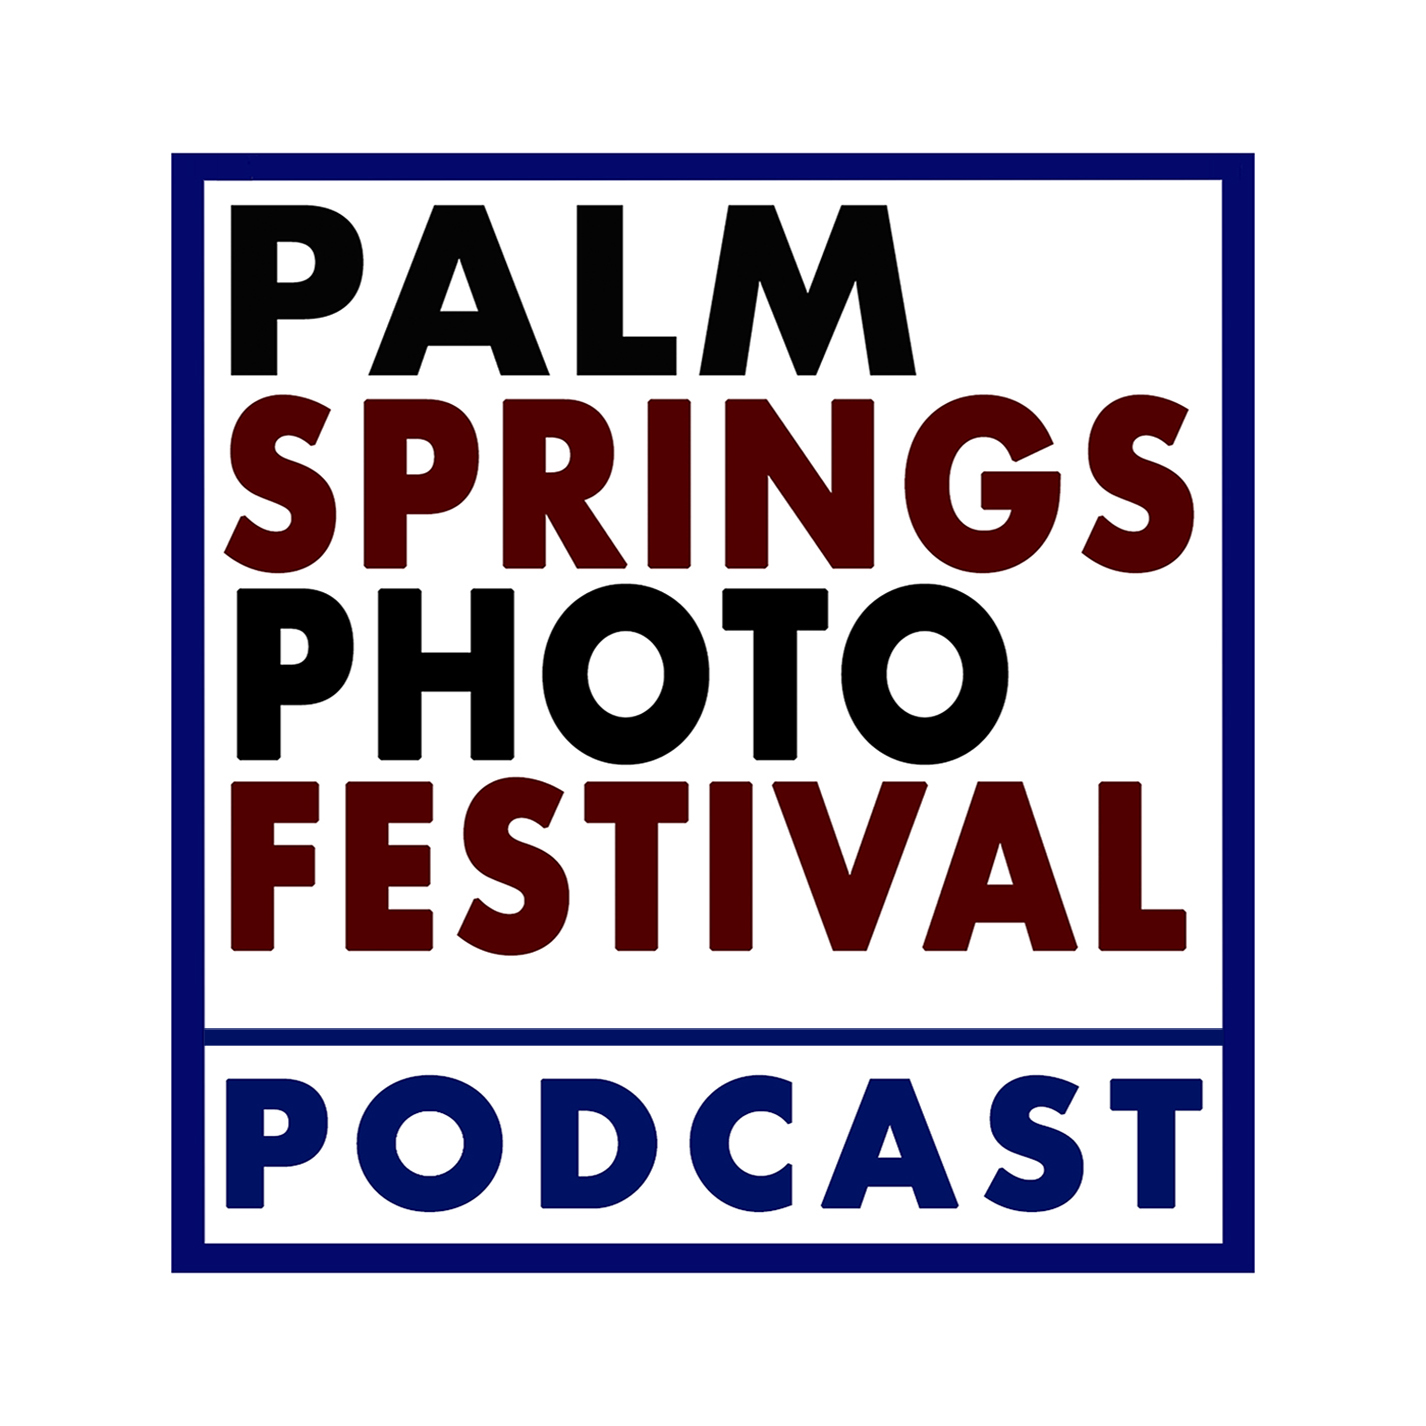 """Palm Springs Photo Festival Podcast # THIRTEEN: In one word: DUANE. Duane Michals talks about life, death, """"art"""", sex, age, Andy Warhol, McKeesport, creativity, personal style and more."""